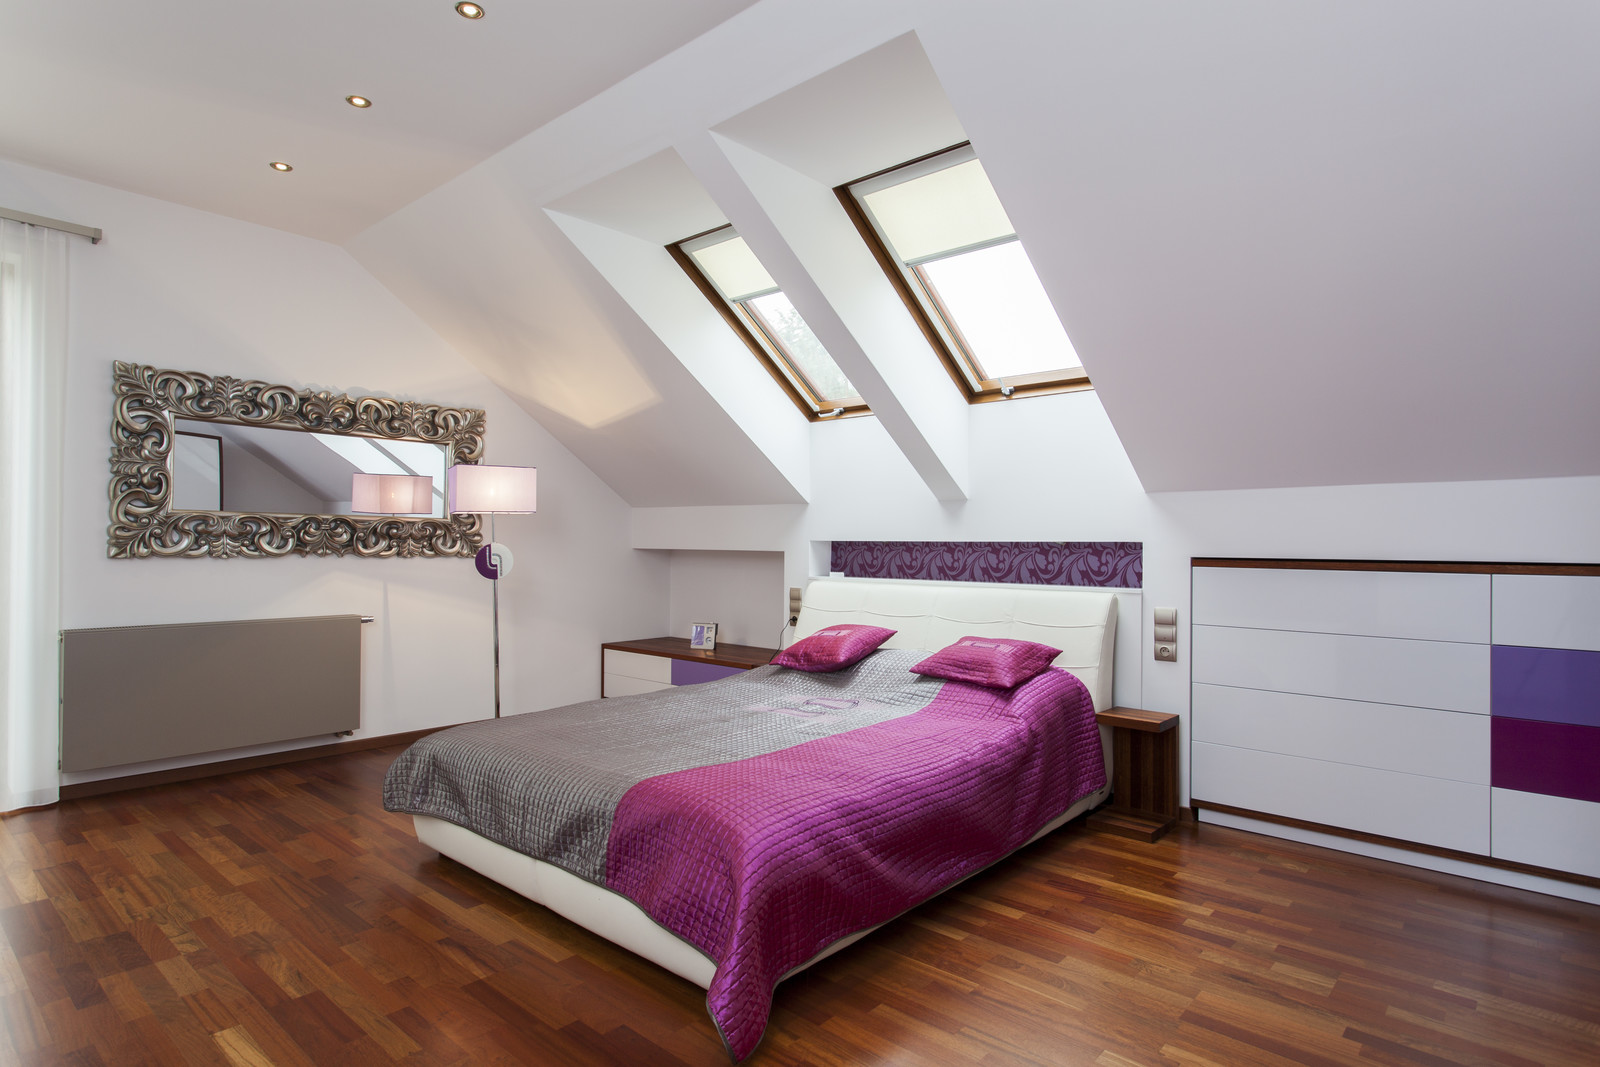 spacious bedroom in the loft of modern home